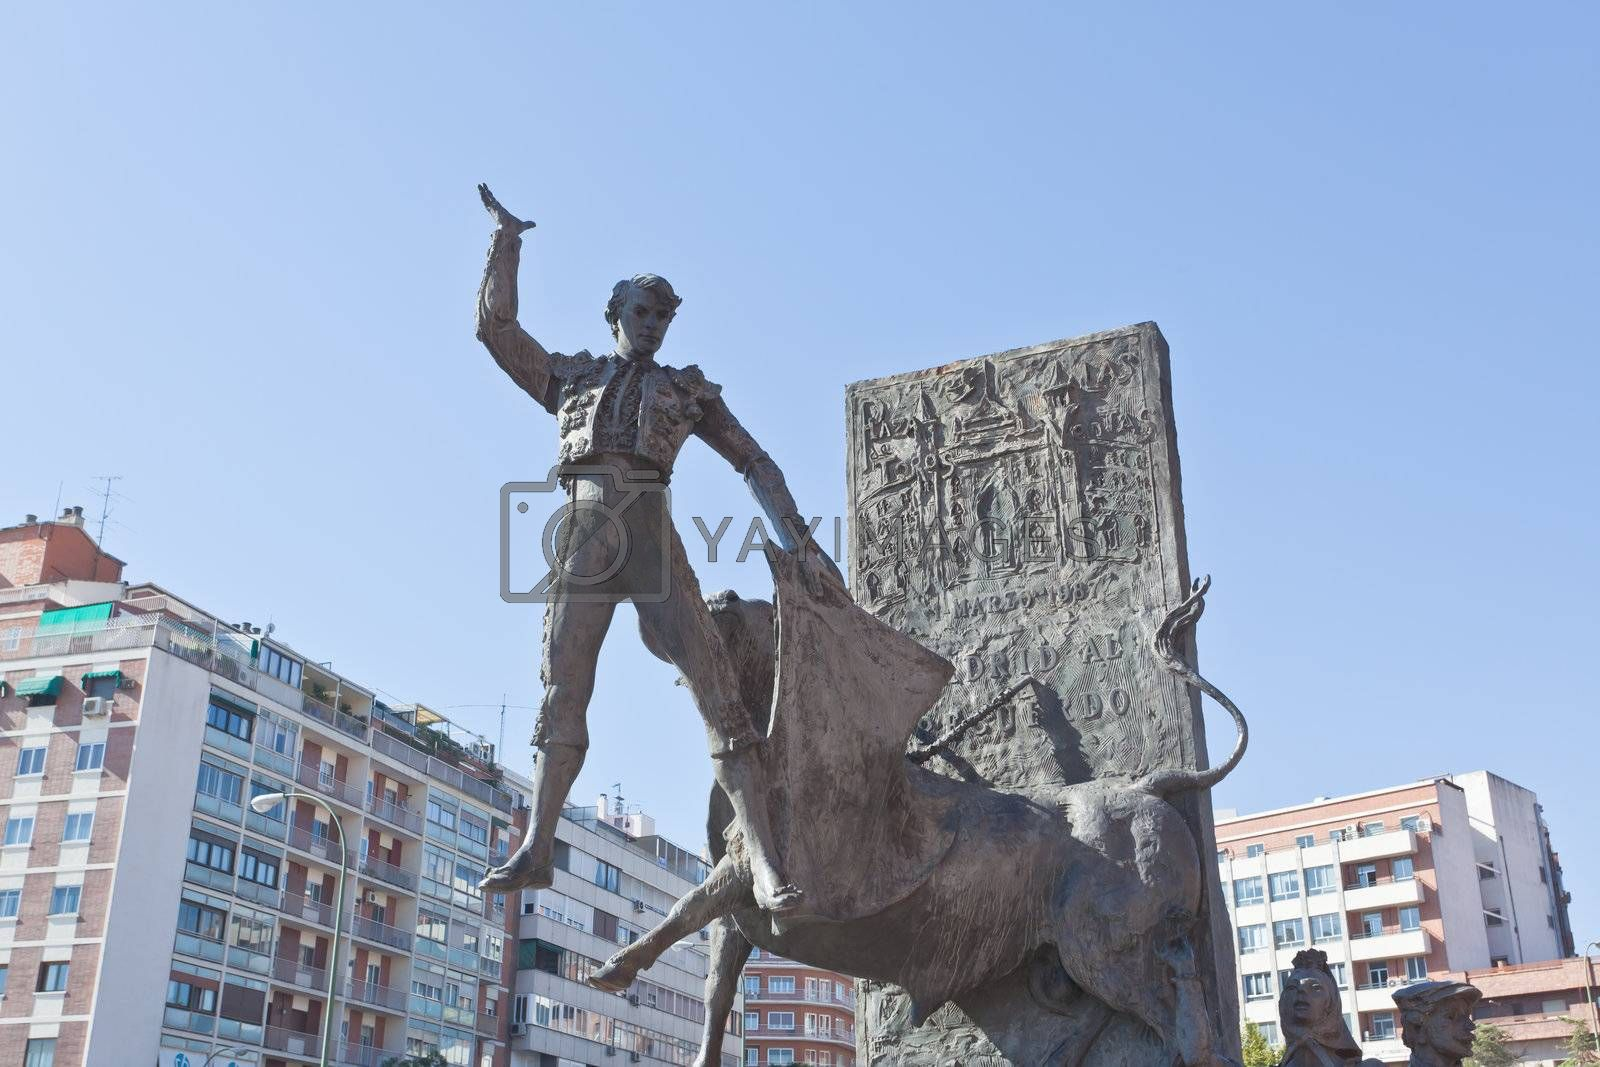 Royalty free image of sculpture in front of Bullfighting arena Plaza de Toros i by gary718